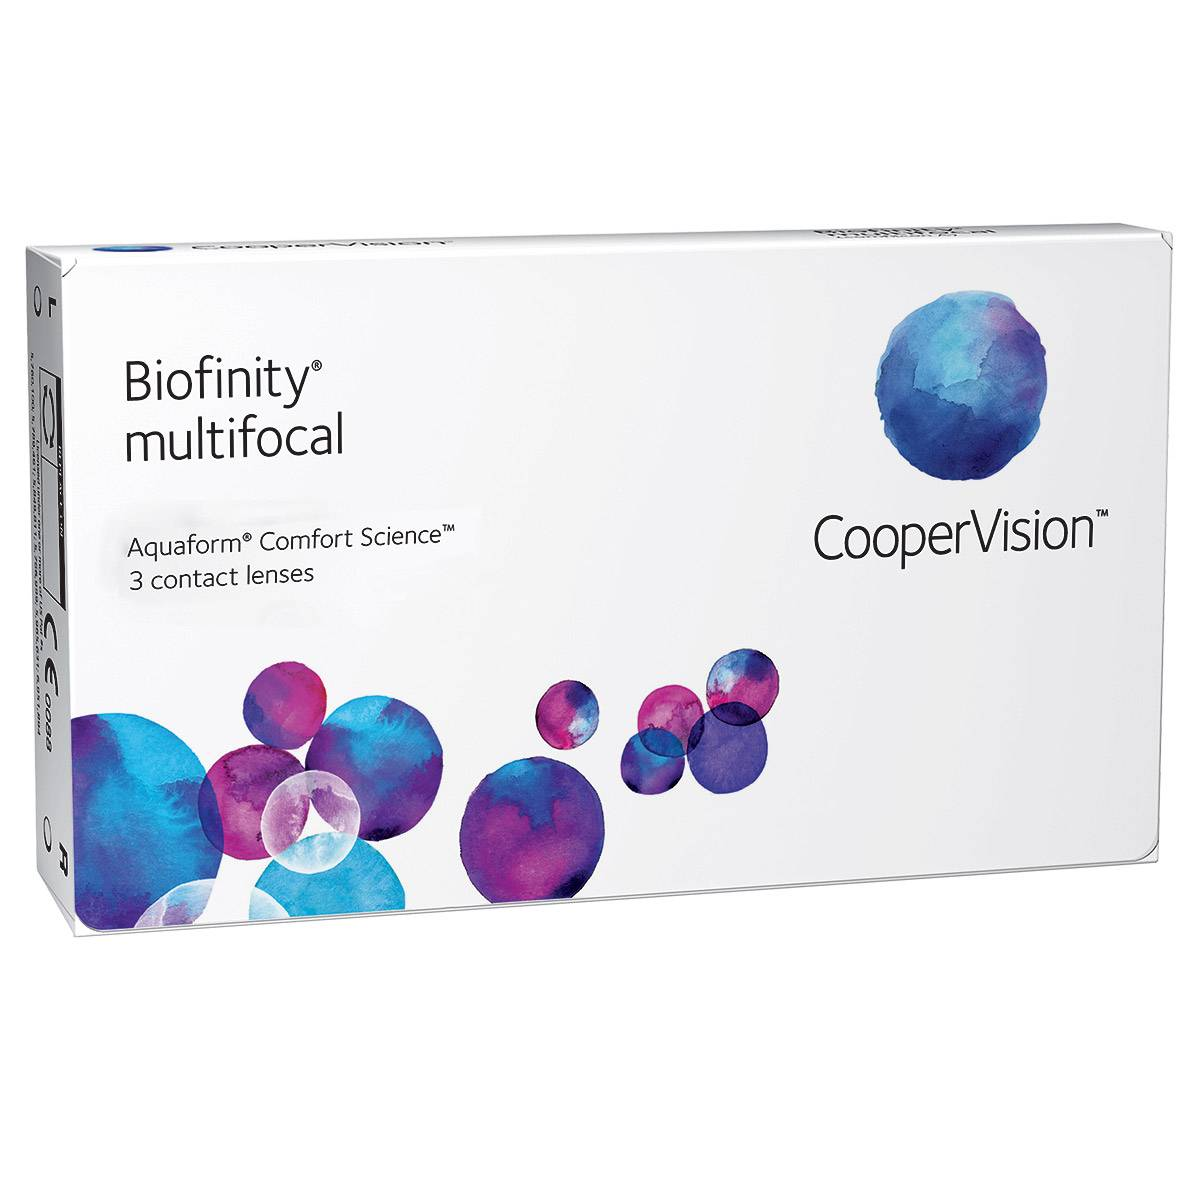 Bausch & Lomb Biofinity Multifocal (3 Contact Lenses), CooperVision Multifocal Monthly Lenses, Comfilcon A